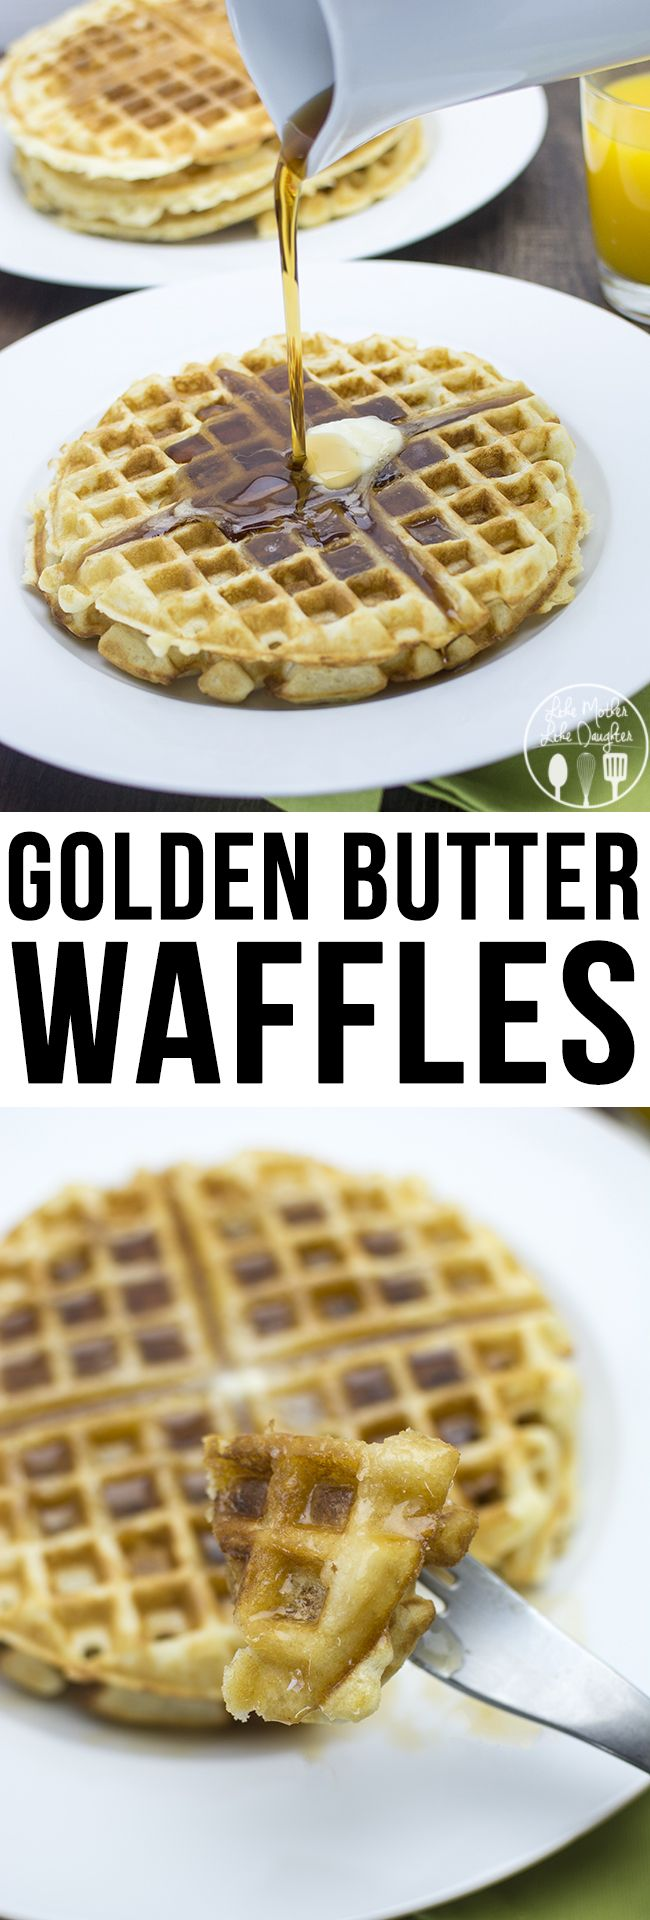 These are really good waffles, (not my recipe) but I cannot quite figure out why this is my only pin that is re-pinned repeatedly! LOL  KEEPER -- Golden Butter Waffles - These are the perfect waffles, crispy on the edges soft in the middle. So great for breakfast, brunch or brinner.